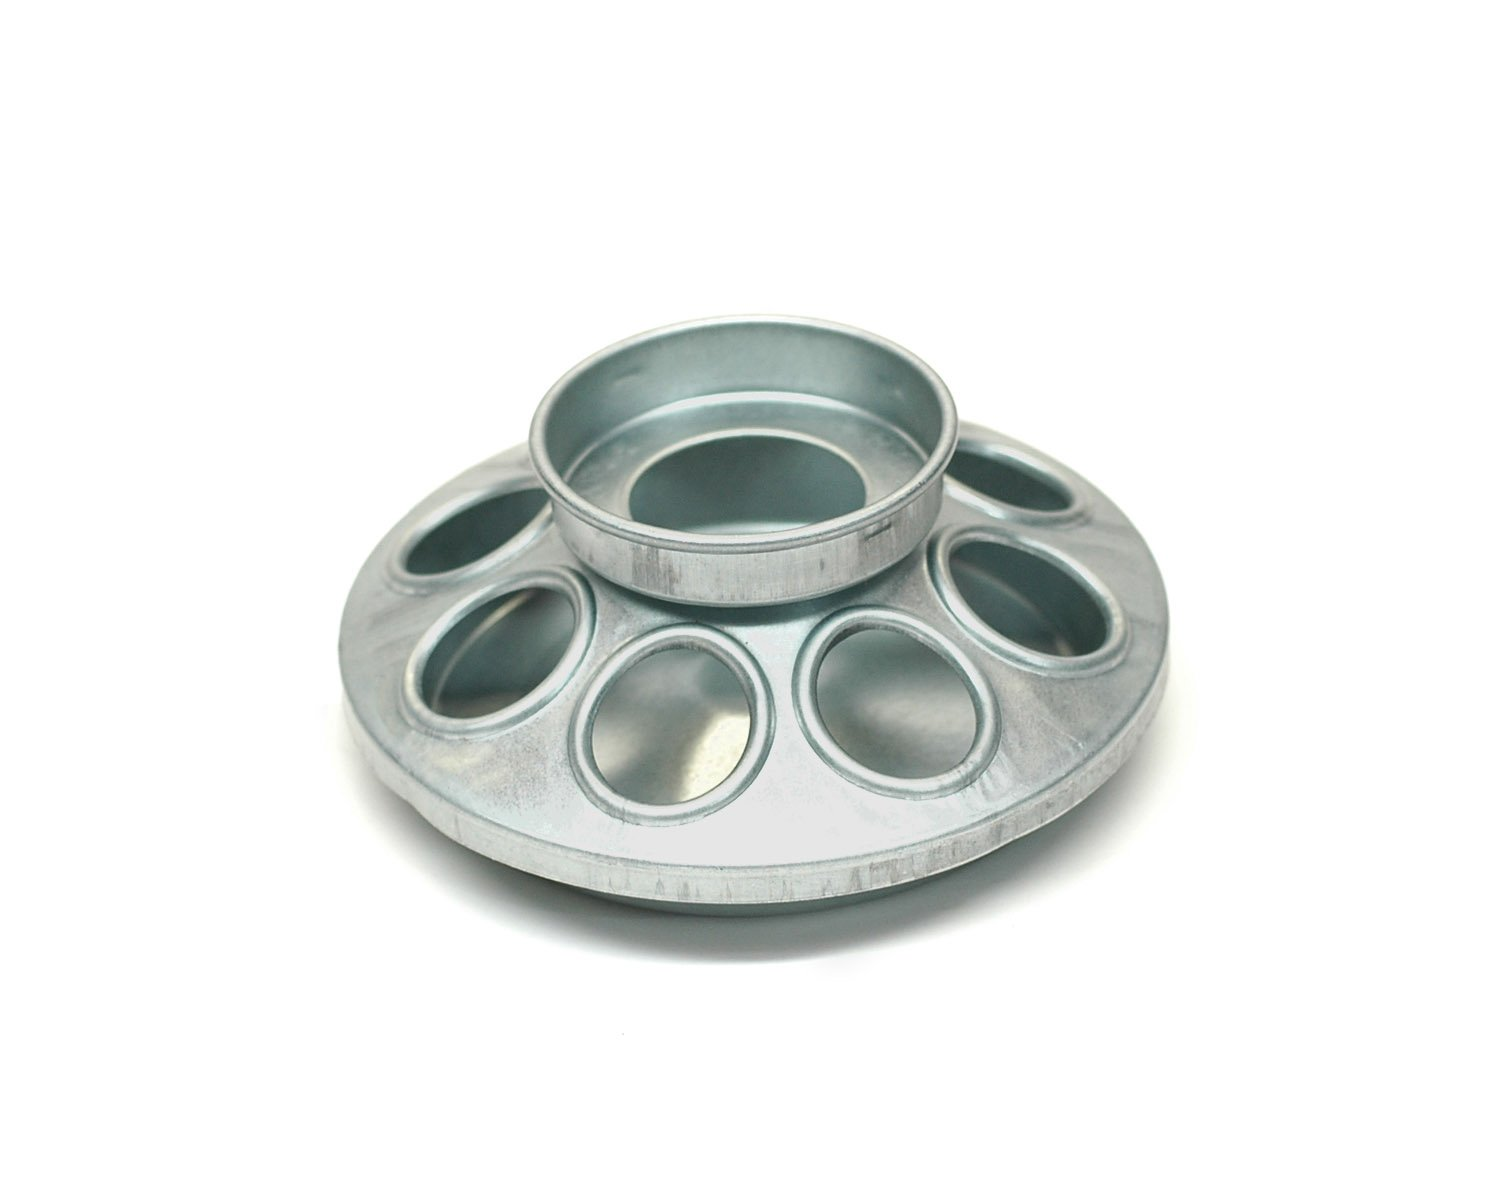 Brower MJ9 8-Hole Galvanized Mason Jar Feeder for Chicks and Small Birds by Brower